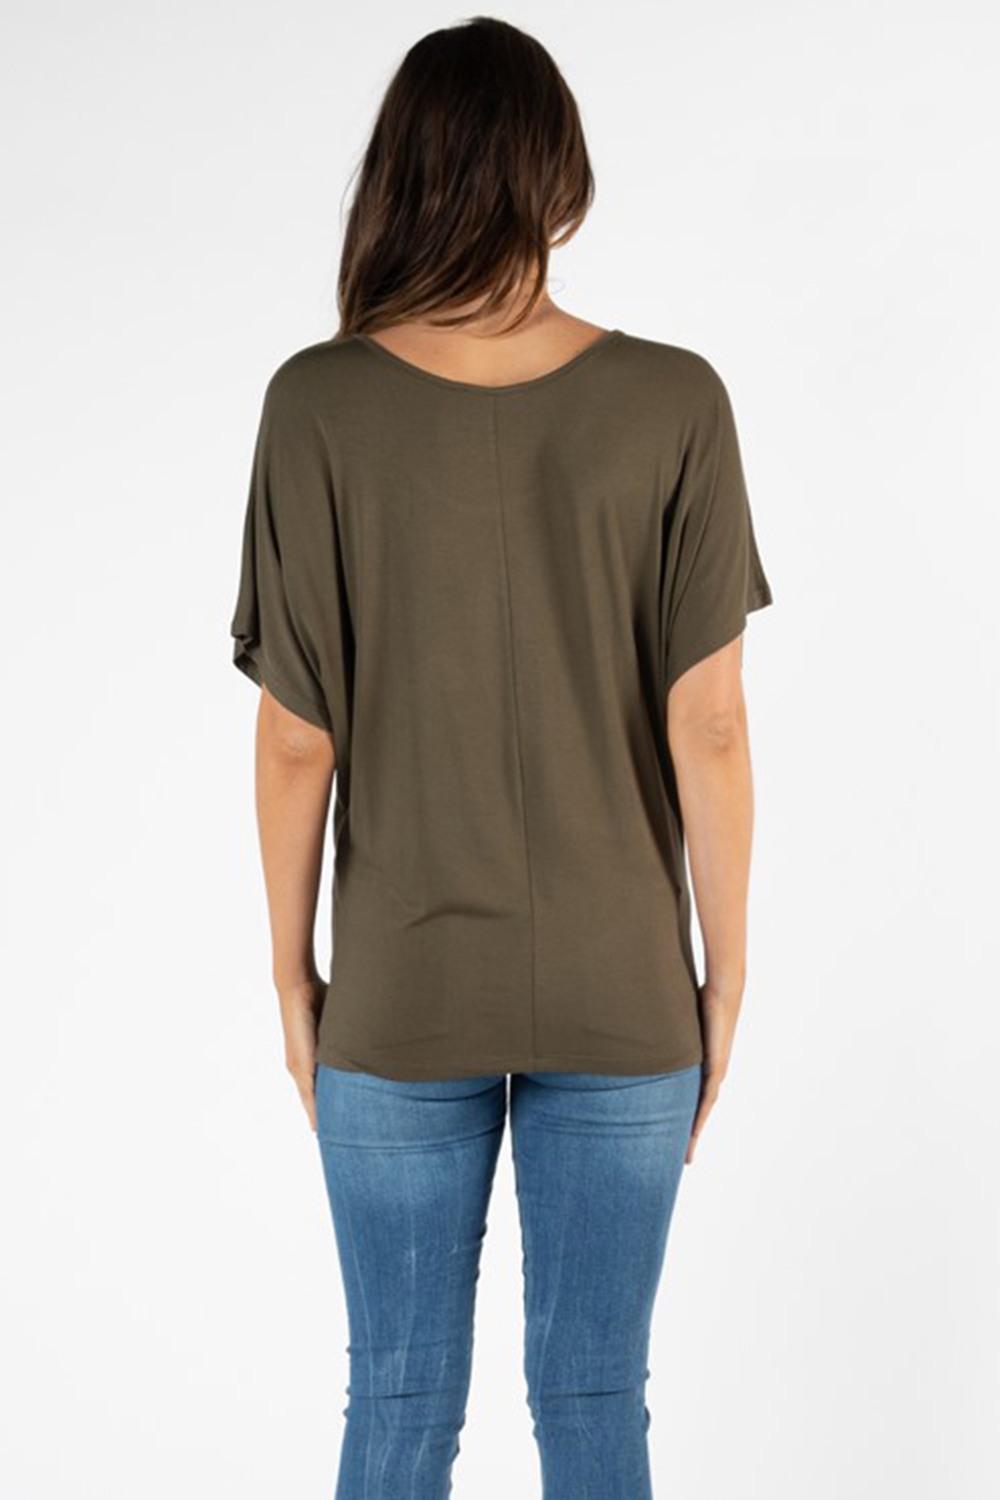 Maui Tee in Khaki by Betty Basics